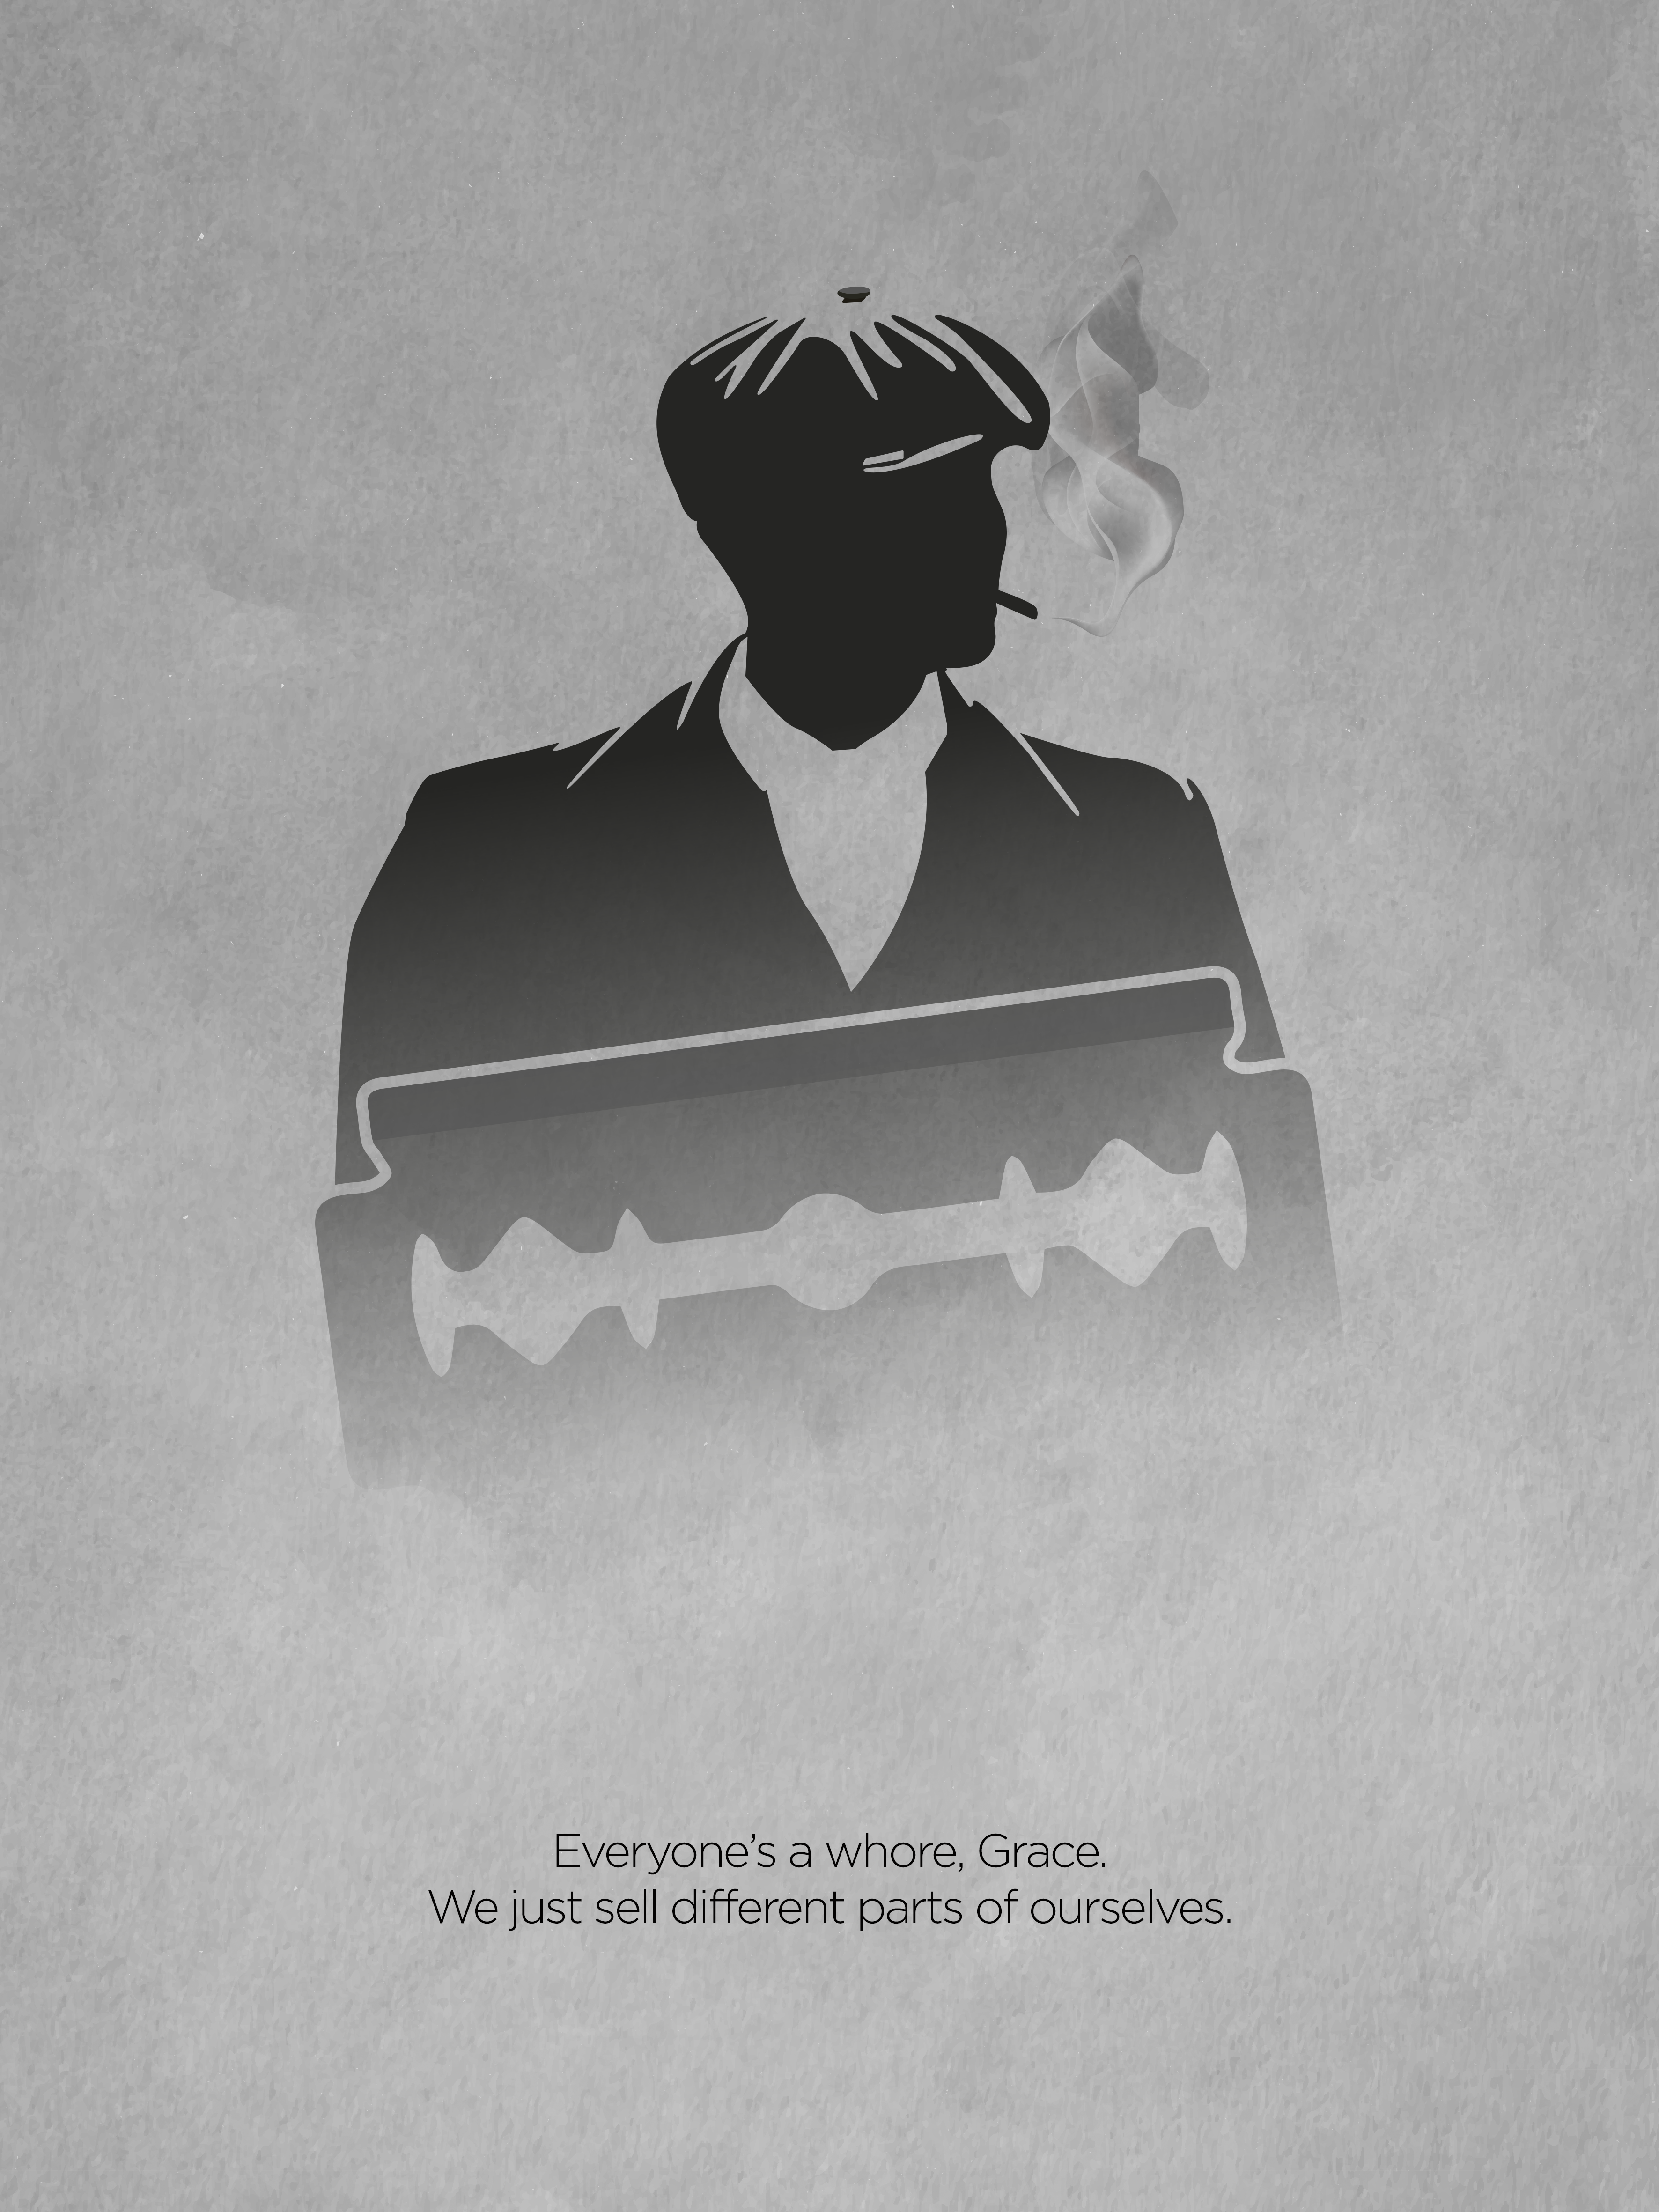 Peaky Blinders Wallpaper Iphone X Peaky Blinders Serie Minimalist Poster And Quote With